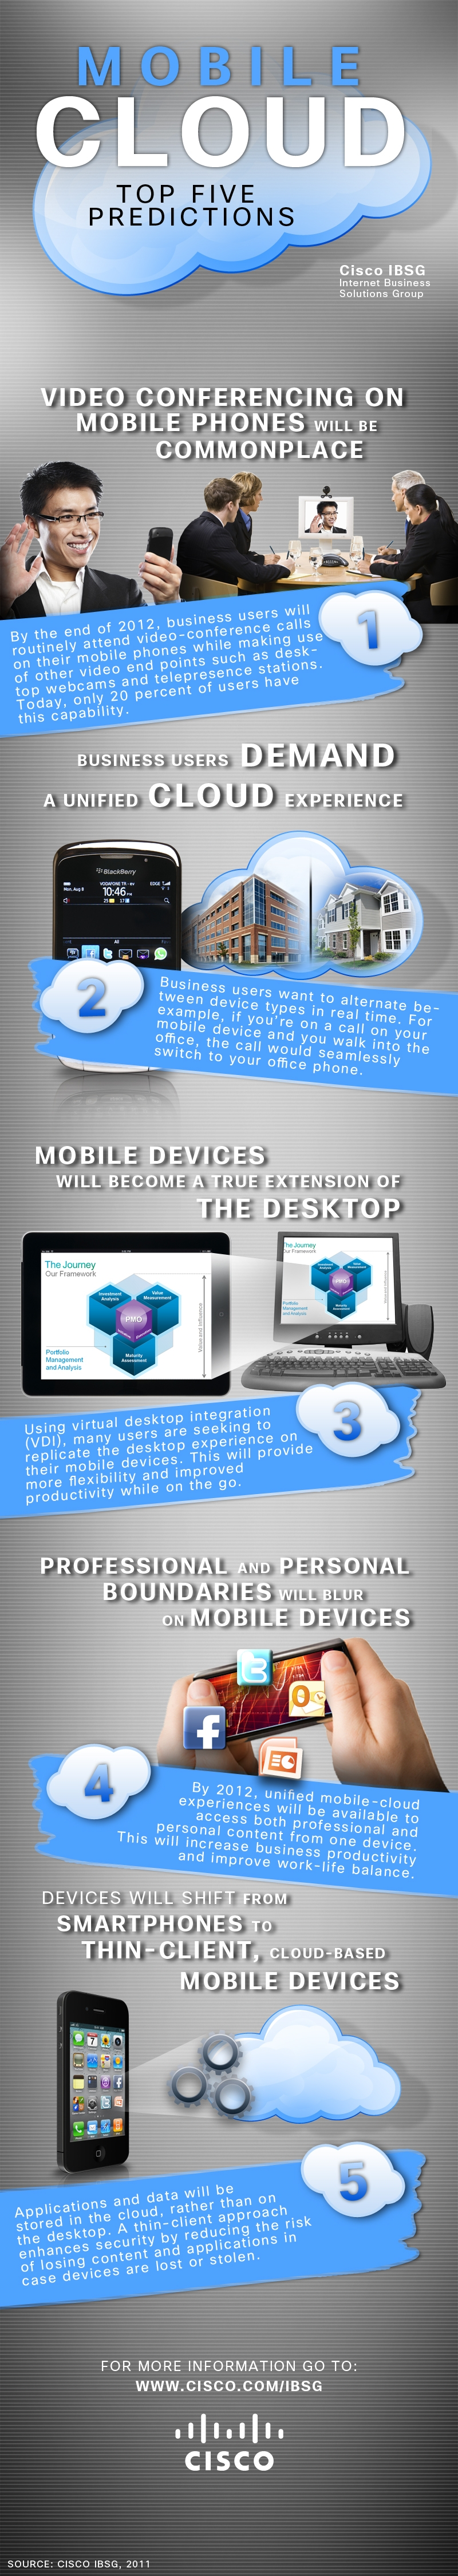 mobile cloud infographic The Medical fraternity + Video Conferencing